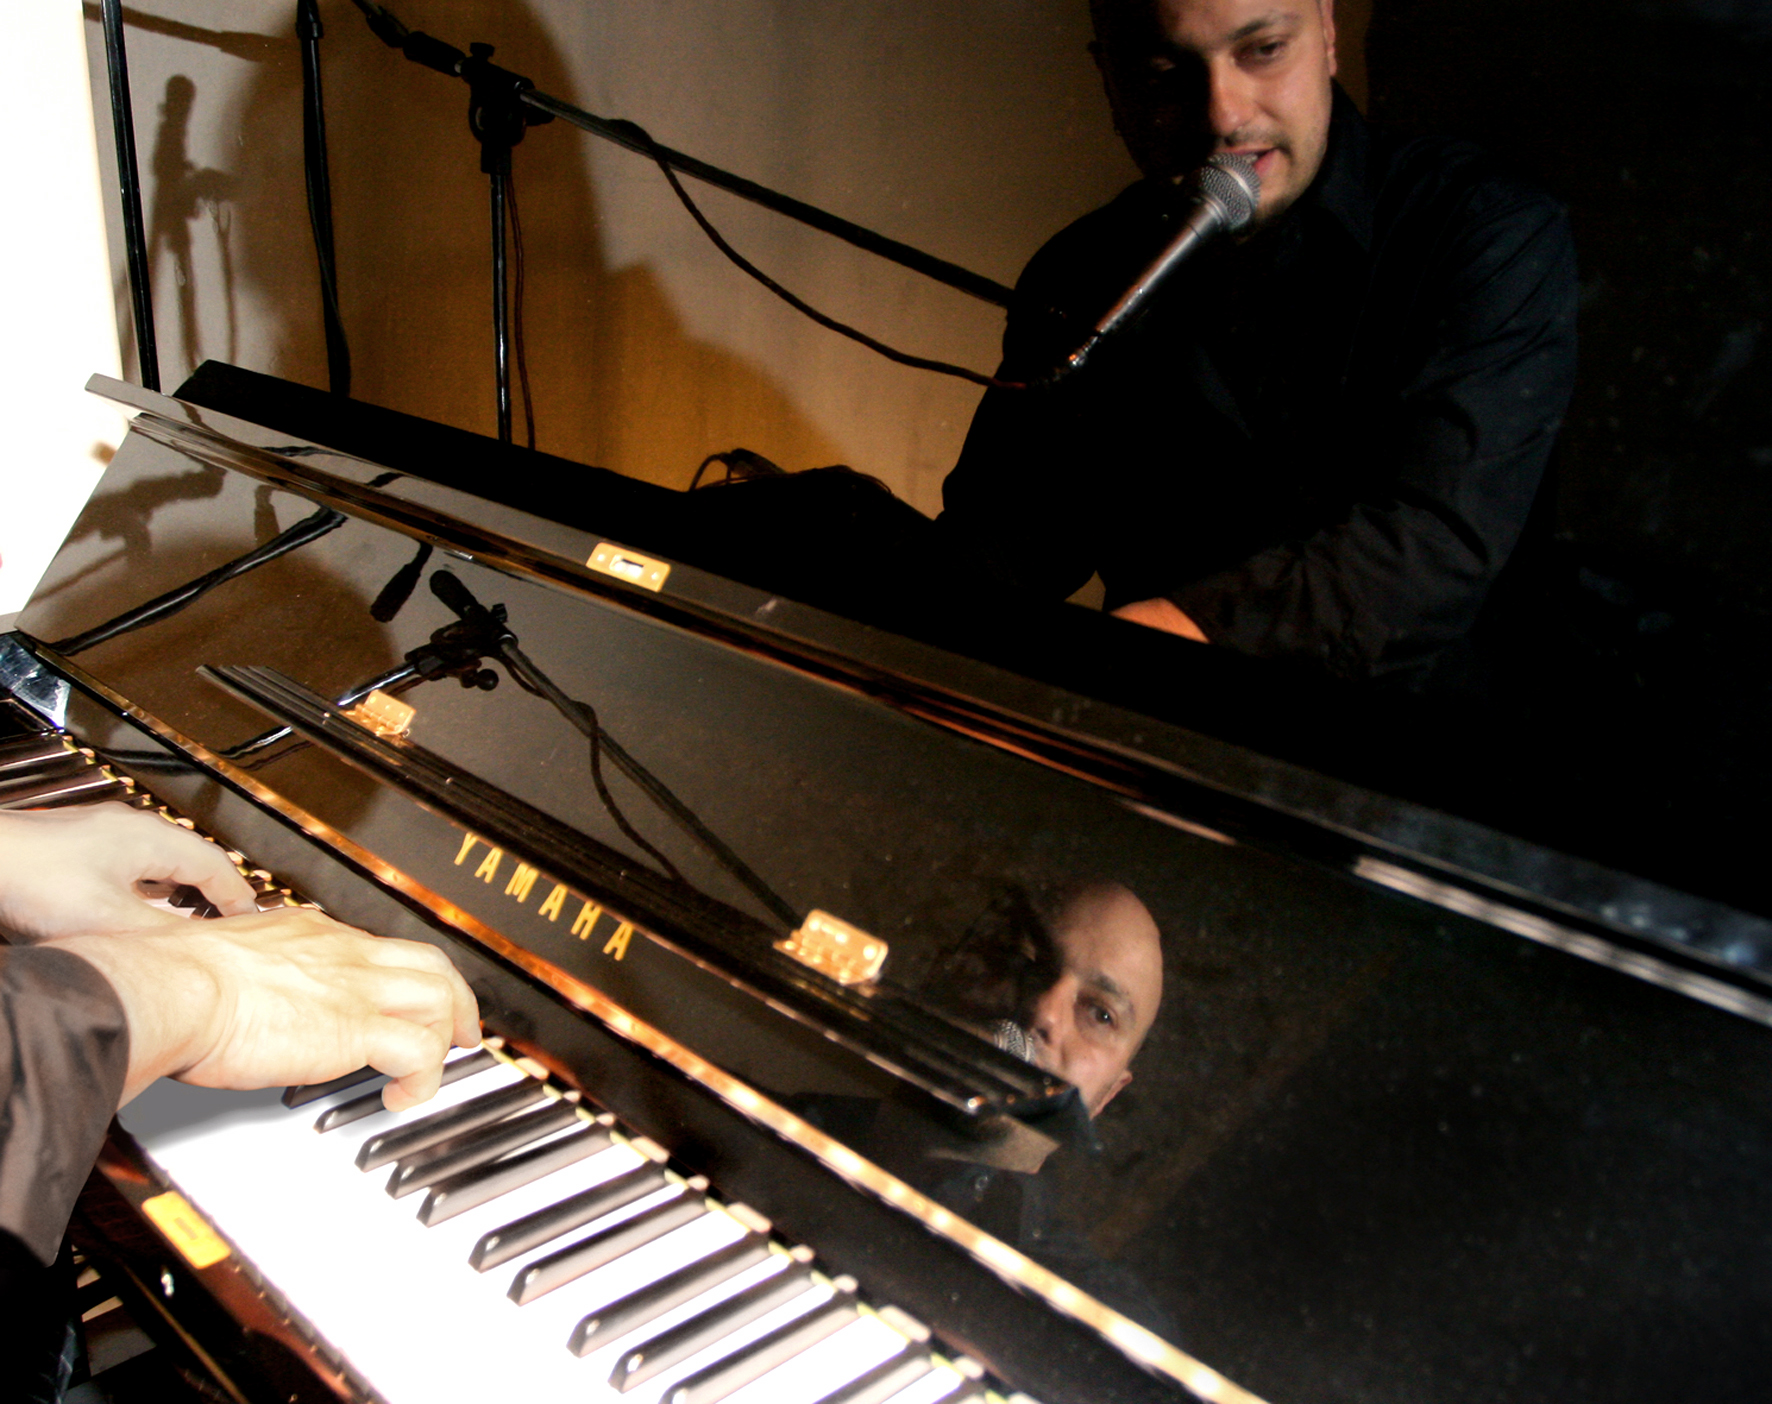 http://www.andreacontin.com/wp-content/uploads/piano-player-live.jpg